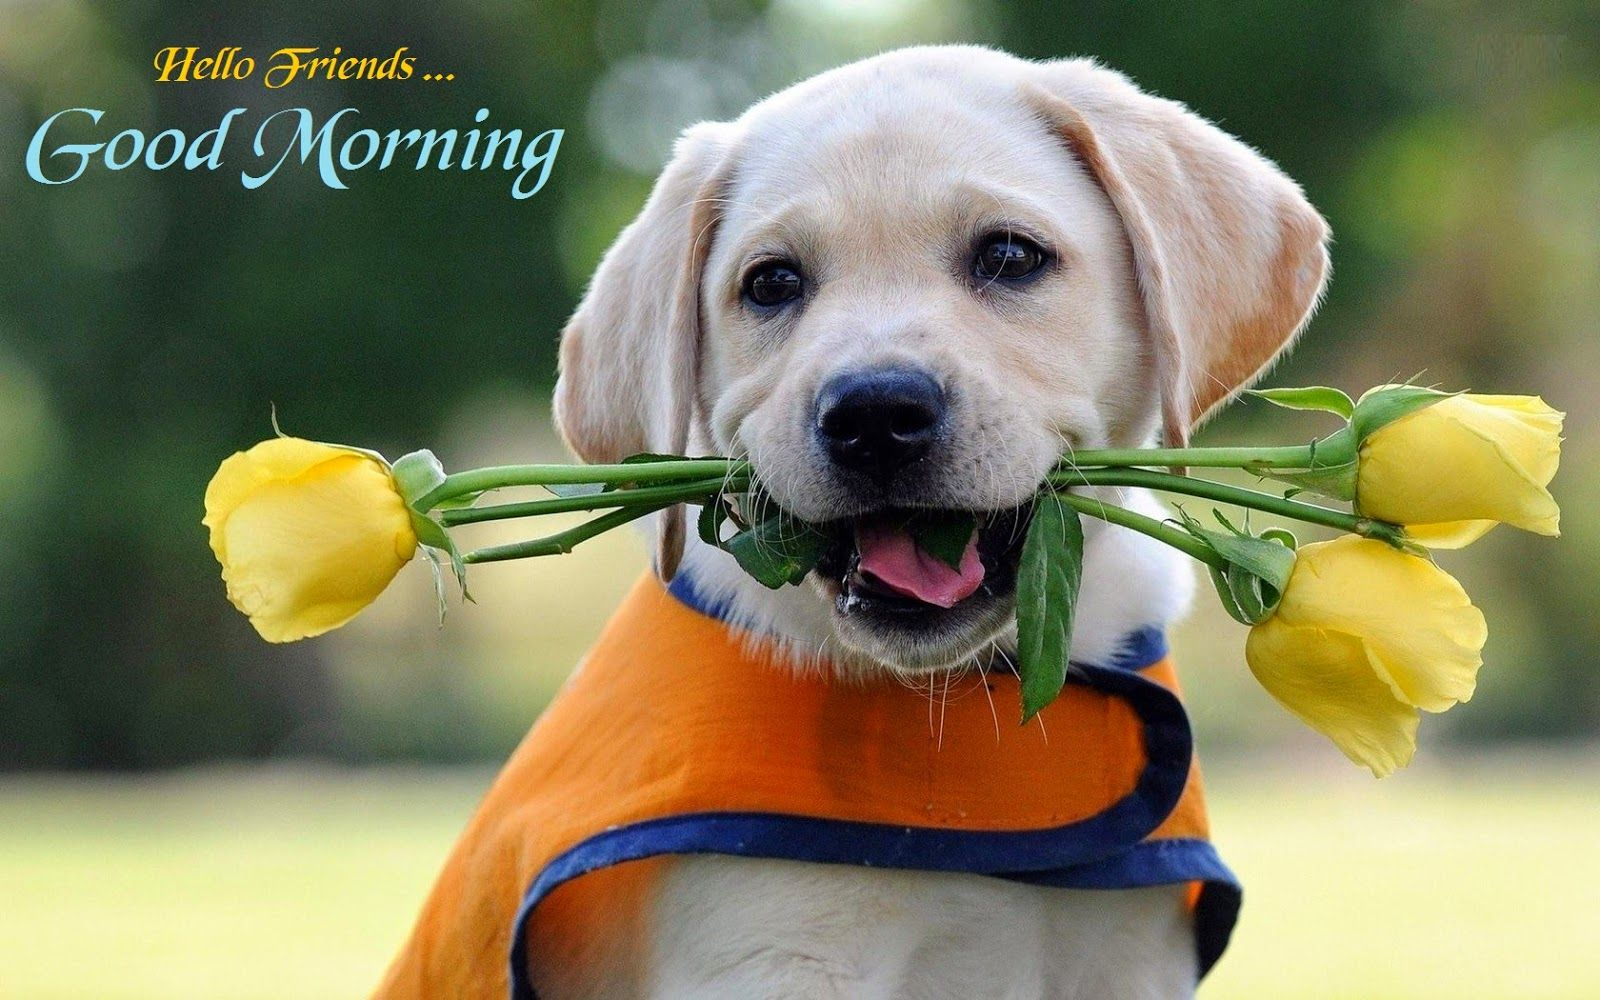 Good Morning Wishes With Dogs Pictures Images